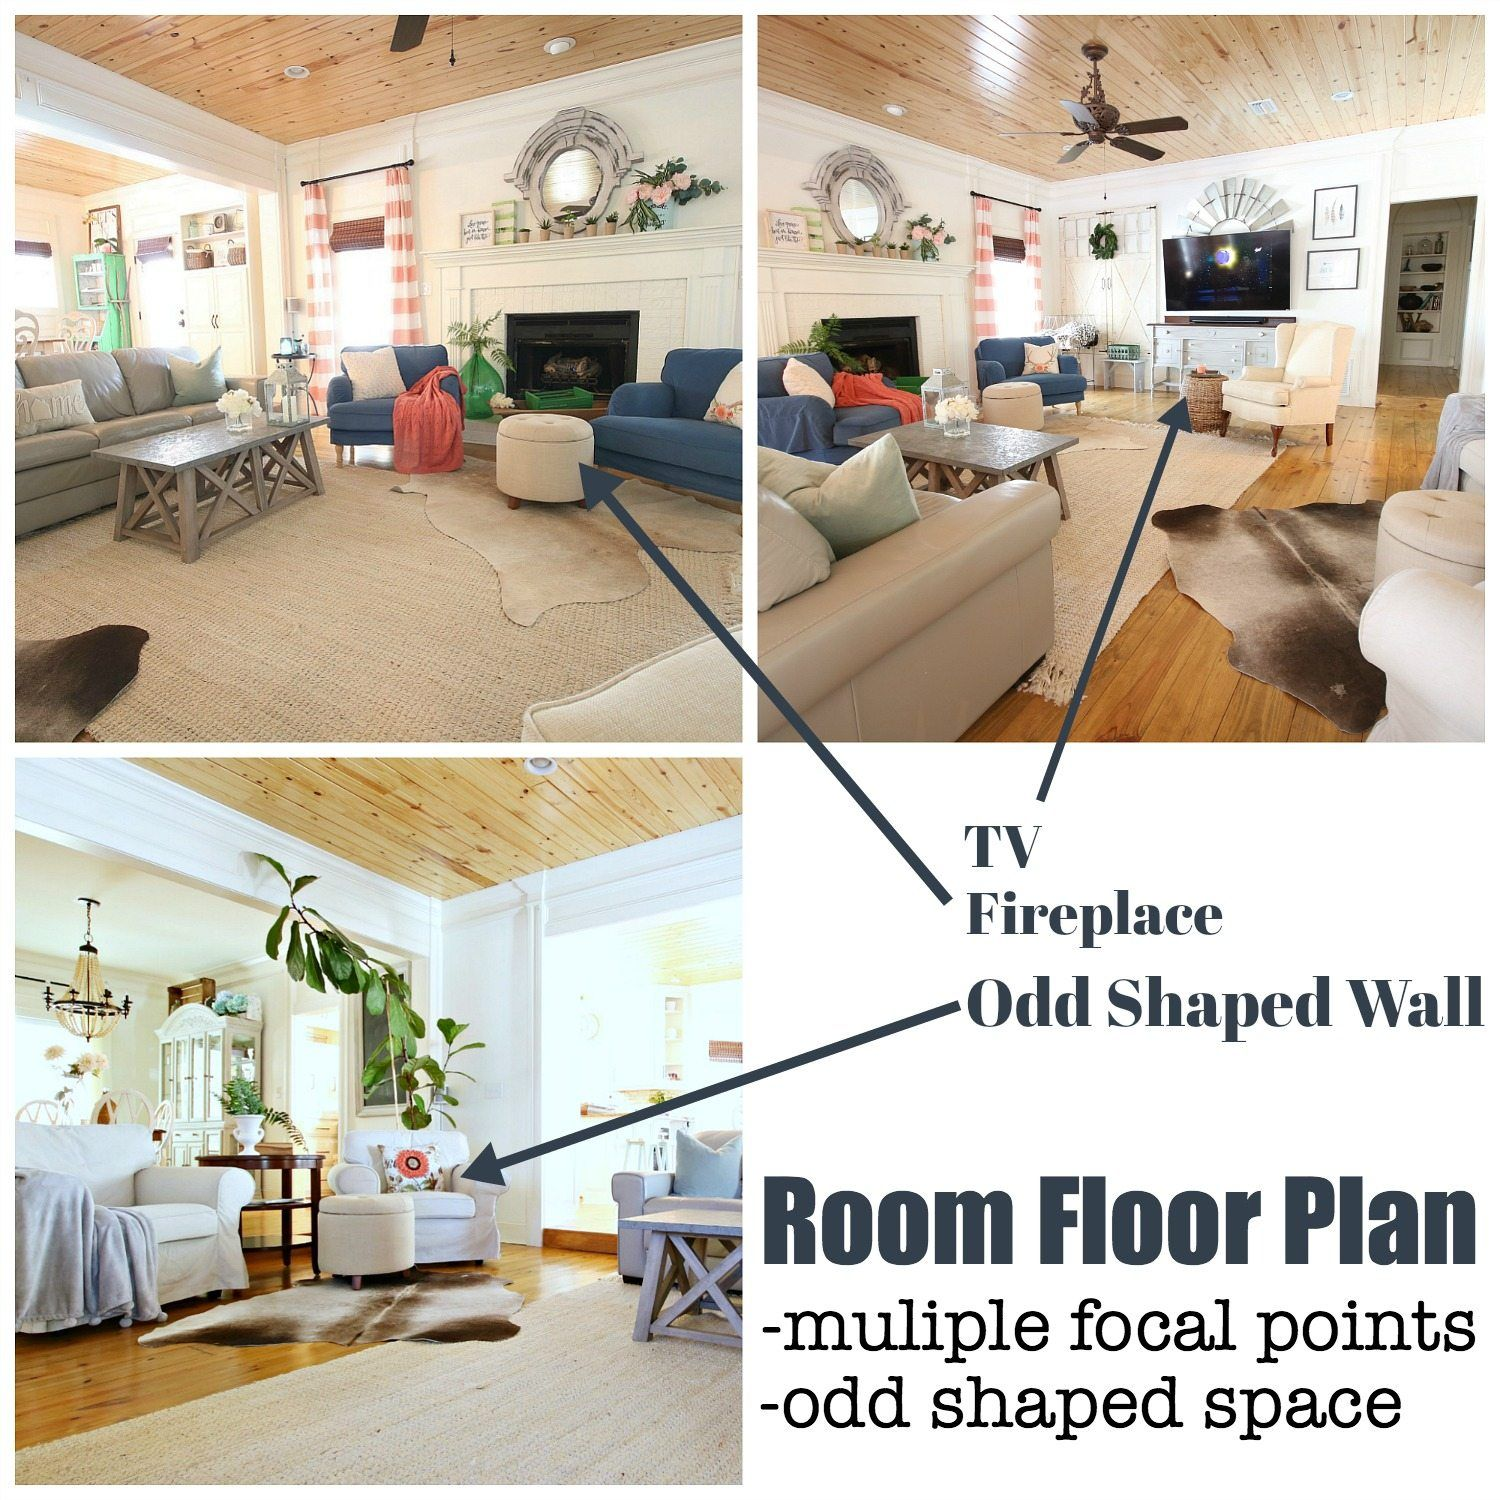 Open Floor Plan Unique Shape Refresh Restyle Room Flooring Floor Plans Flooring #oddly #shaped #living #room